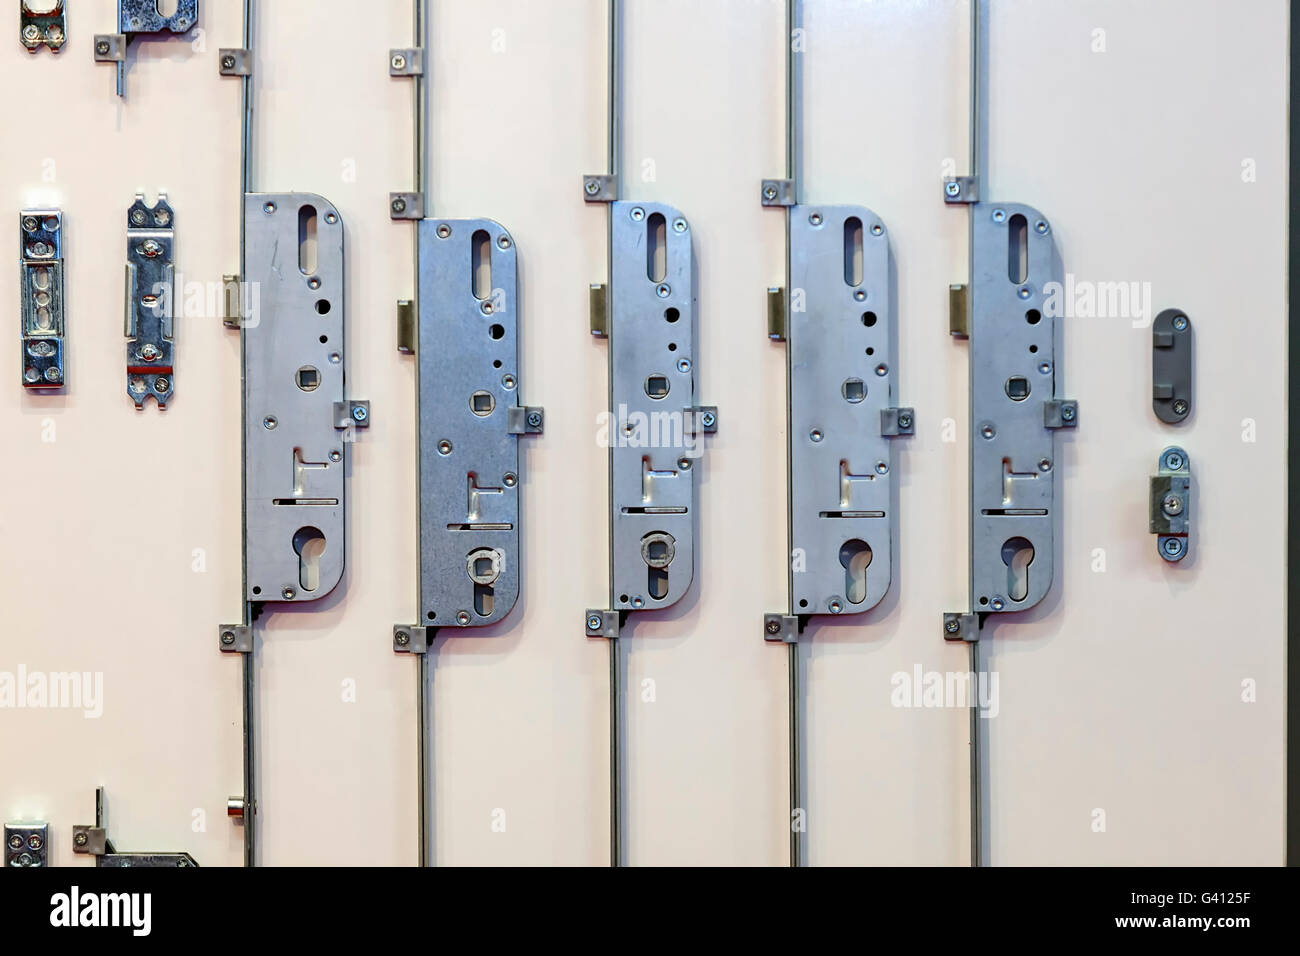 Five steel door lock mechanisms on exhibition - Stock Image